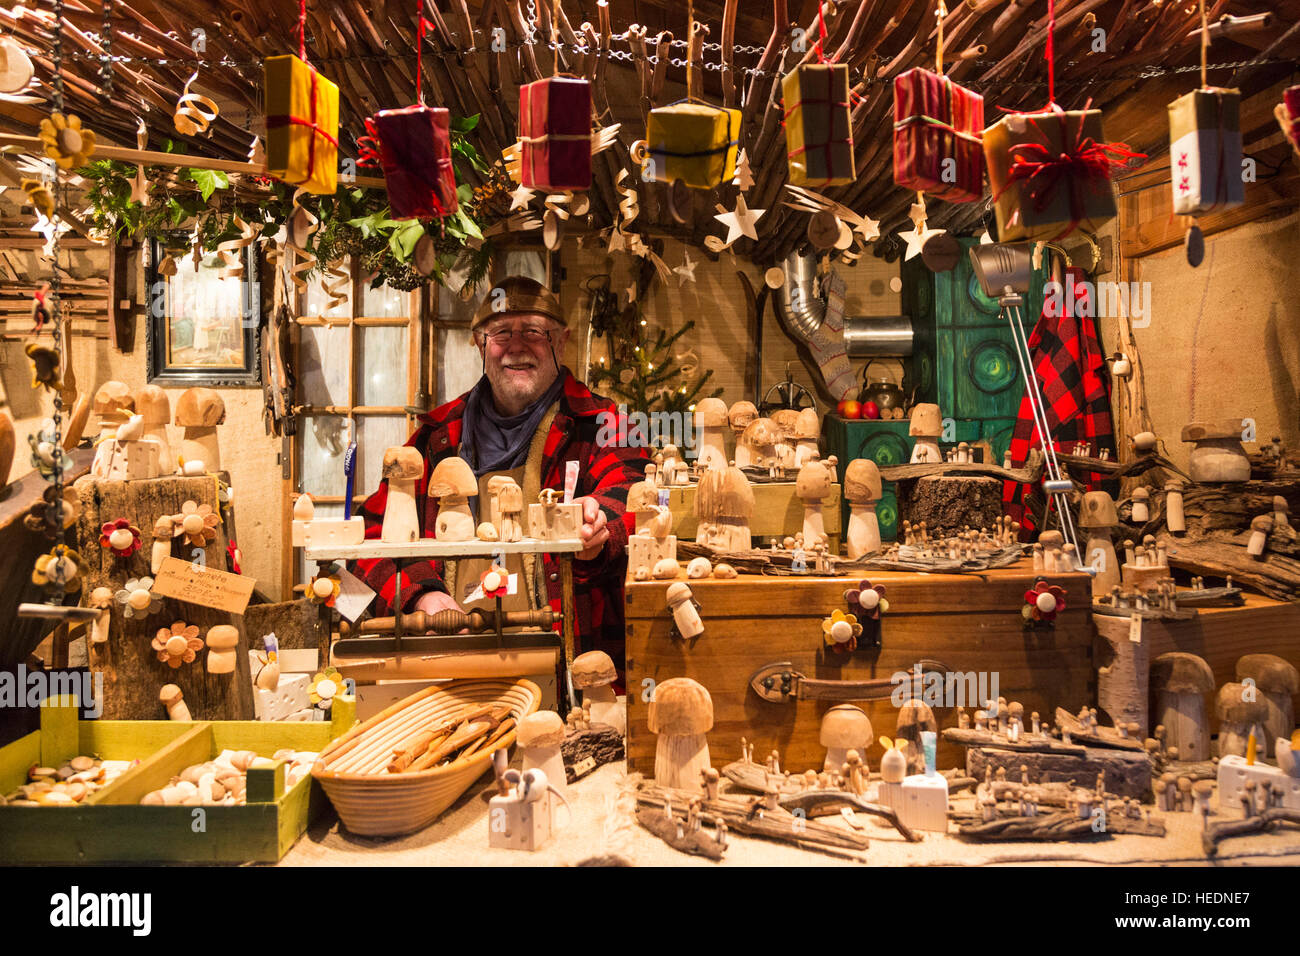 17 december 2016 huts selling traditional goods thousands attend the traditional christmas market at moated castle schloss merode in - Traditional Castle 2016